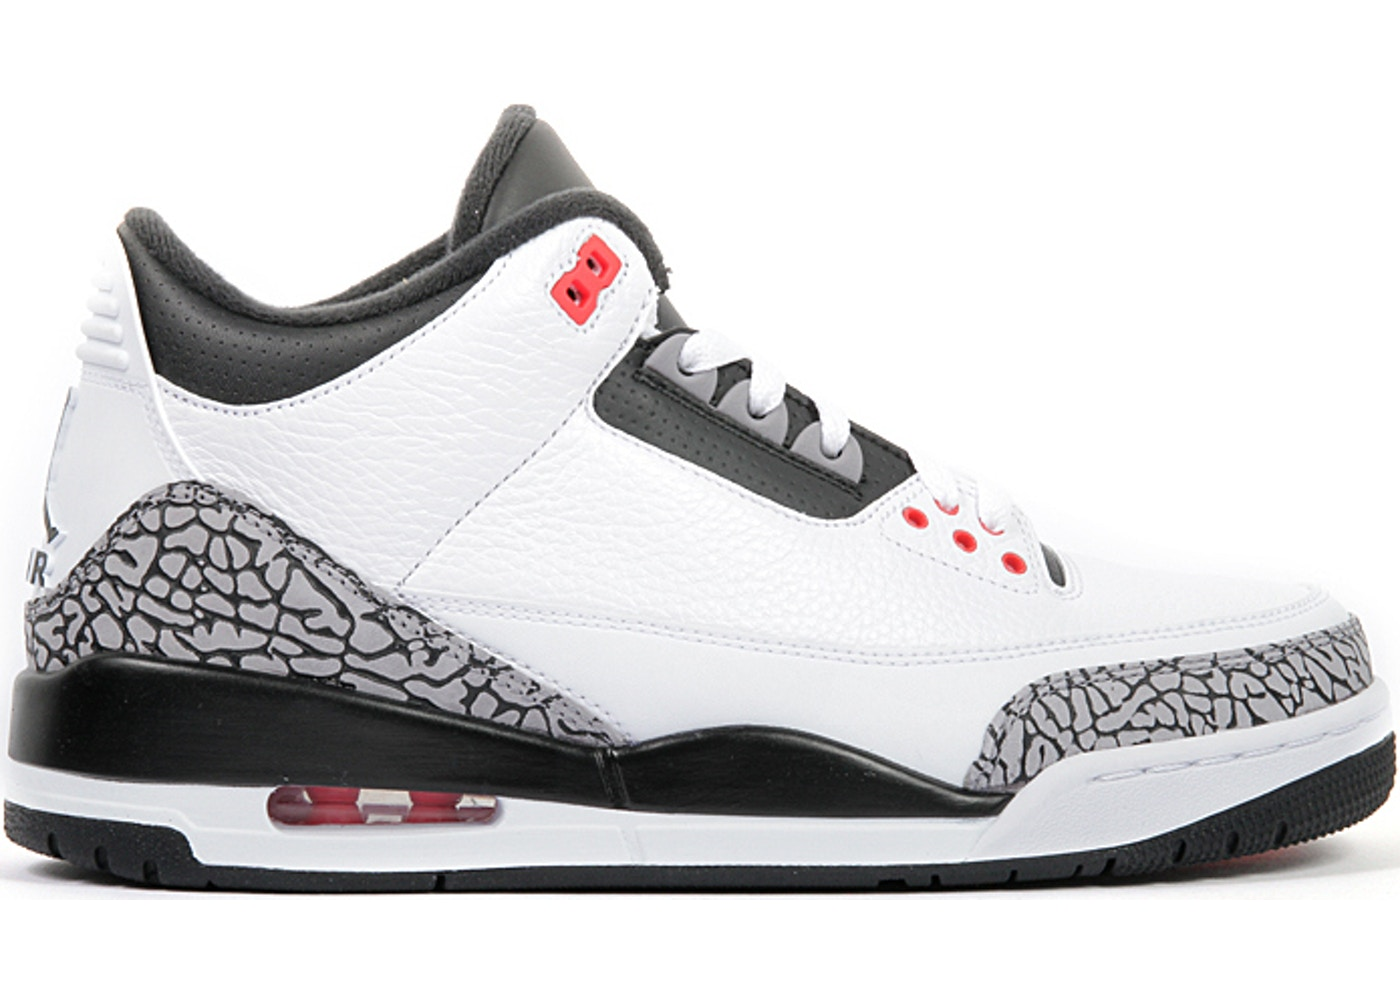 868c4227960a Air Jordan 3 Size 18 Shoes - Release Date